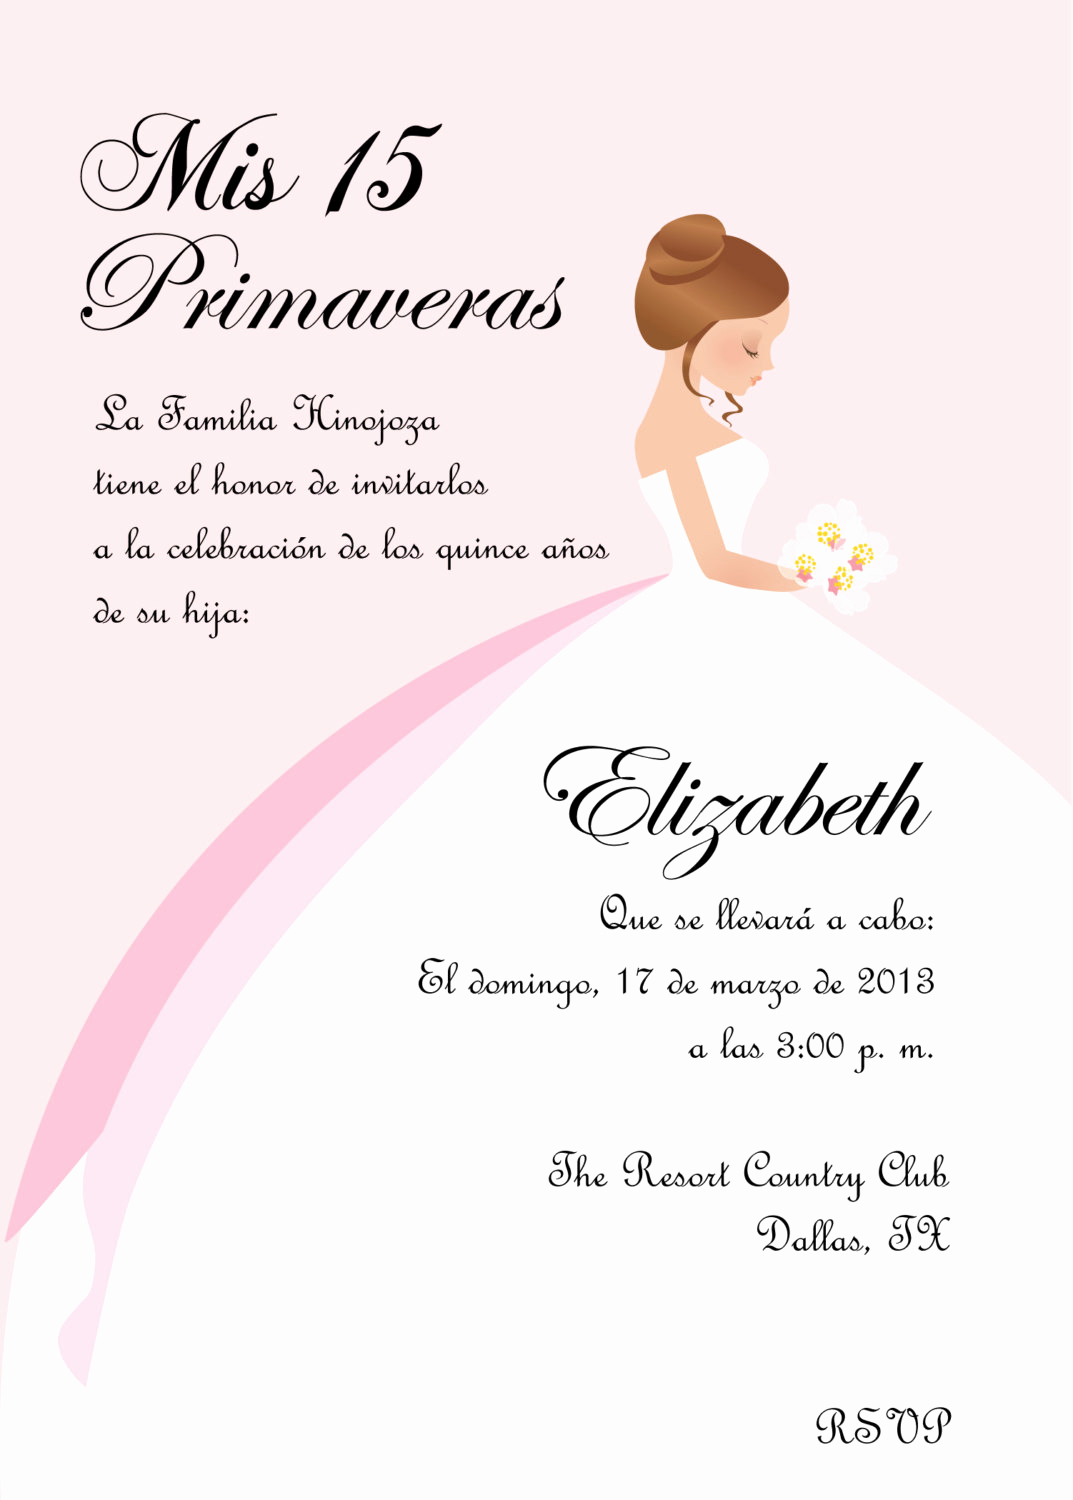 Quinceanera Invitation Wording Spanish Lovely Diy Princess Sweet 16 Quinceanera Invitation English Spanish